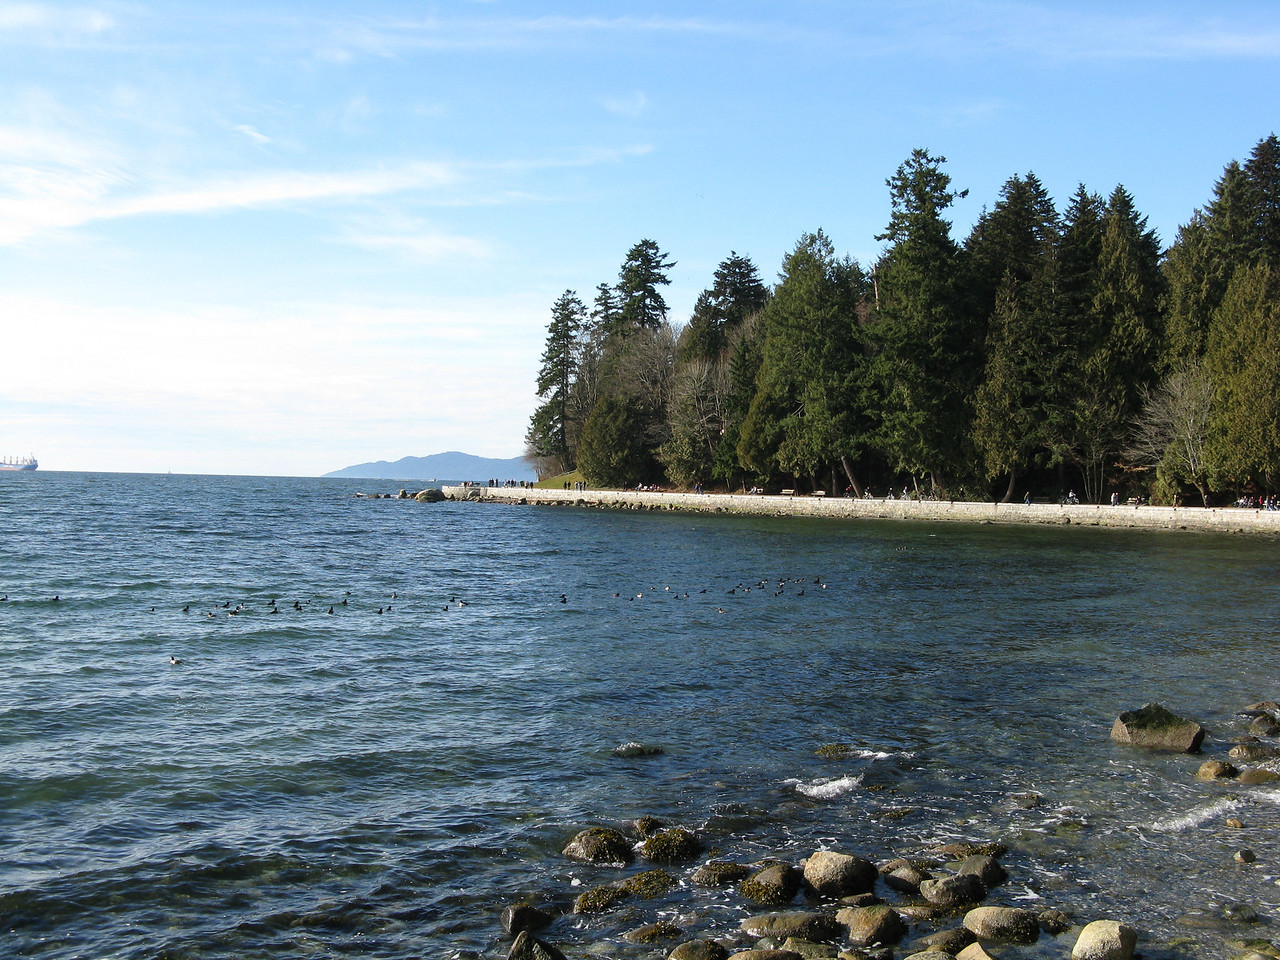 English Bay, looking northwest at Burrard Inlet, on the west side of the park.